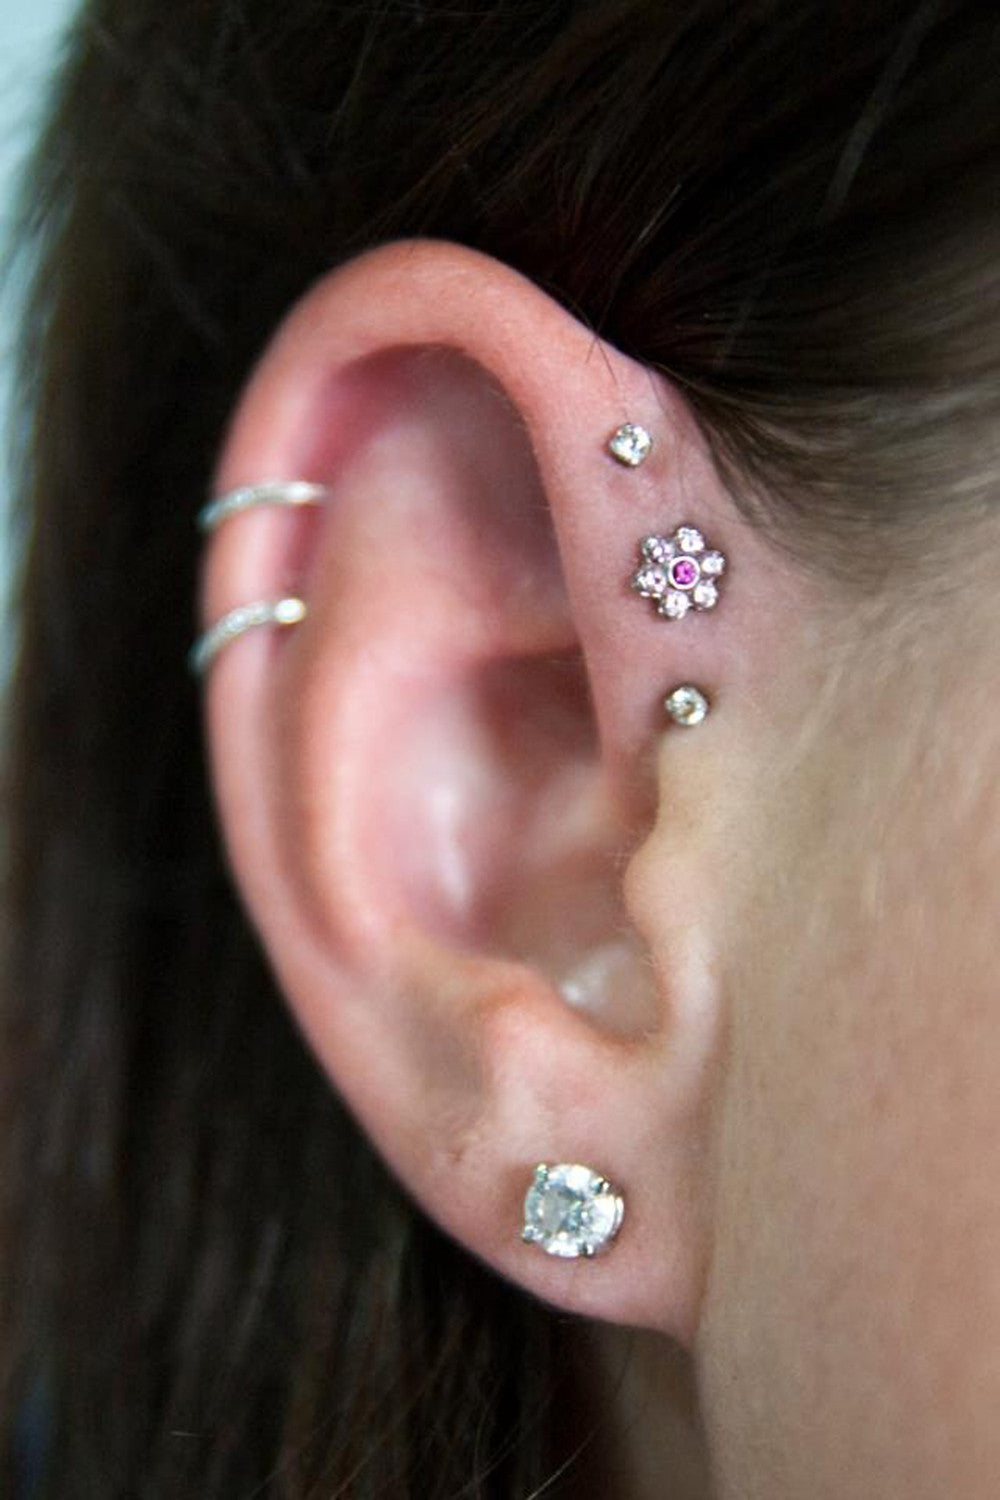 Multiple Ear Piercing Ideas at MyBodiArt.com - Silver Double Cartilage Rings Pinna Hoops Helix Upper Ear - Triple Forward Helix Crystal Flower Earrings